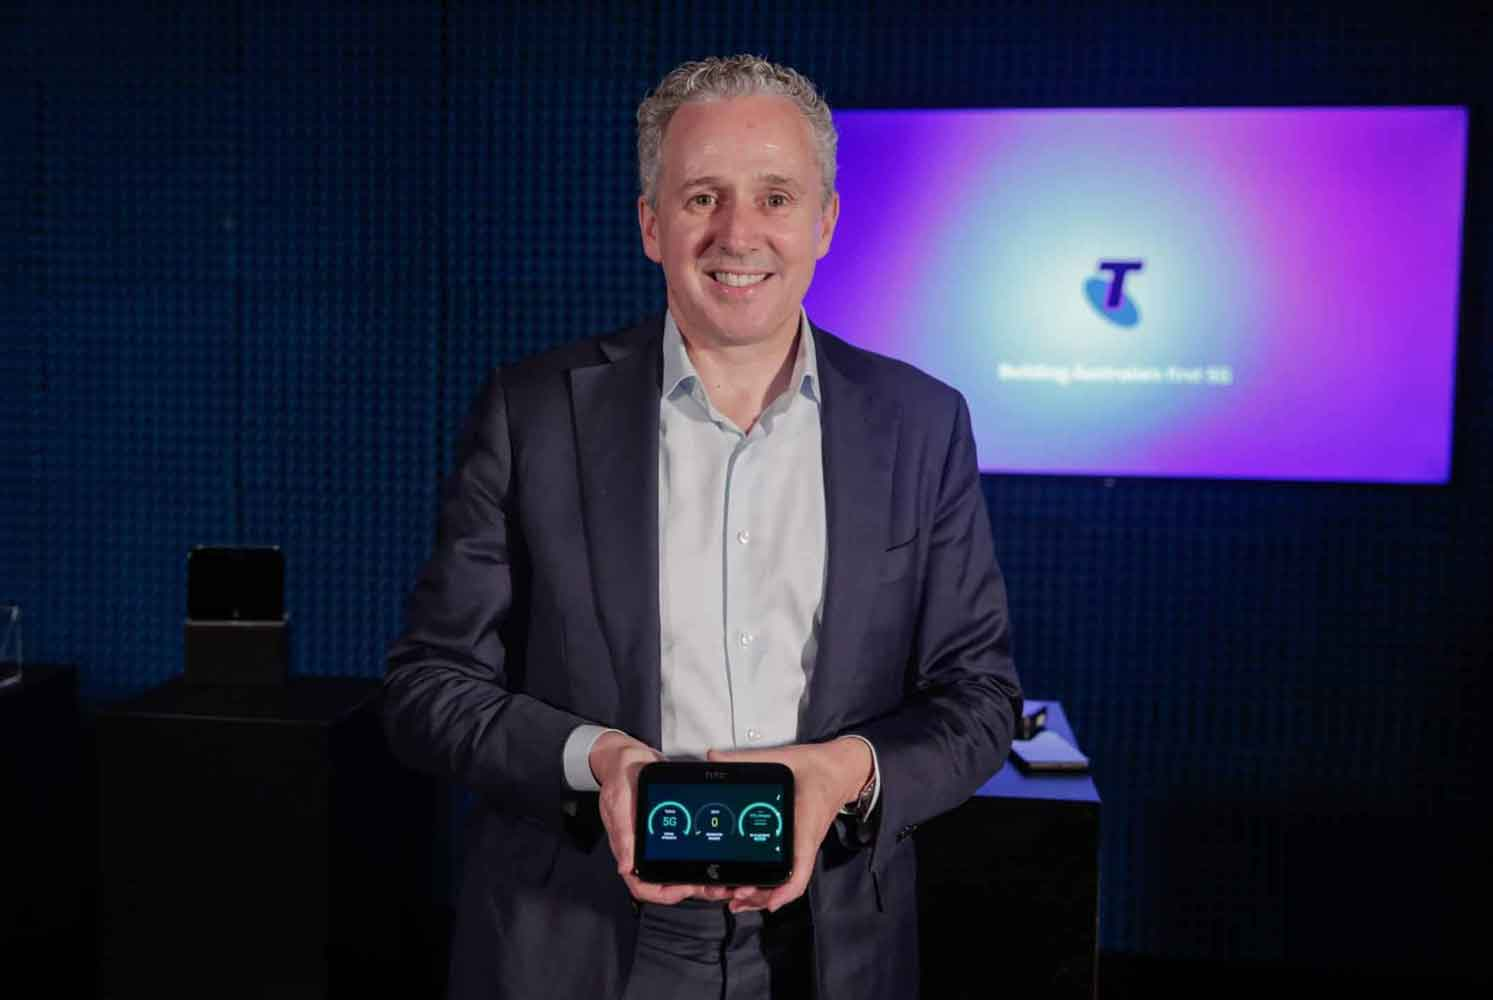 HTC 5G Hub is a smart mobile broadband device co-developed with Telstra.